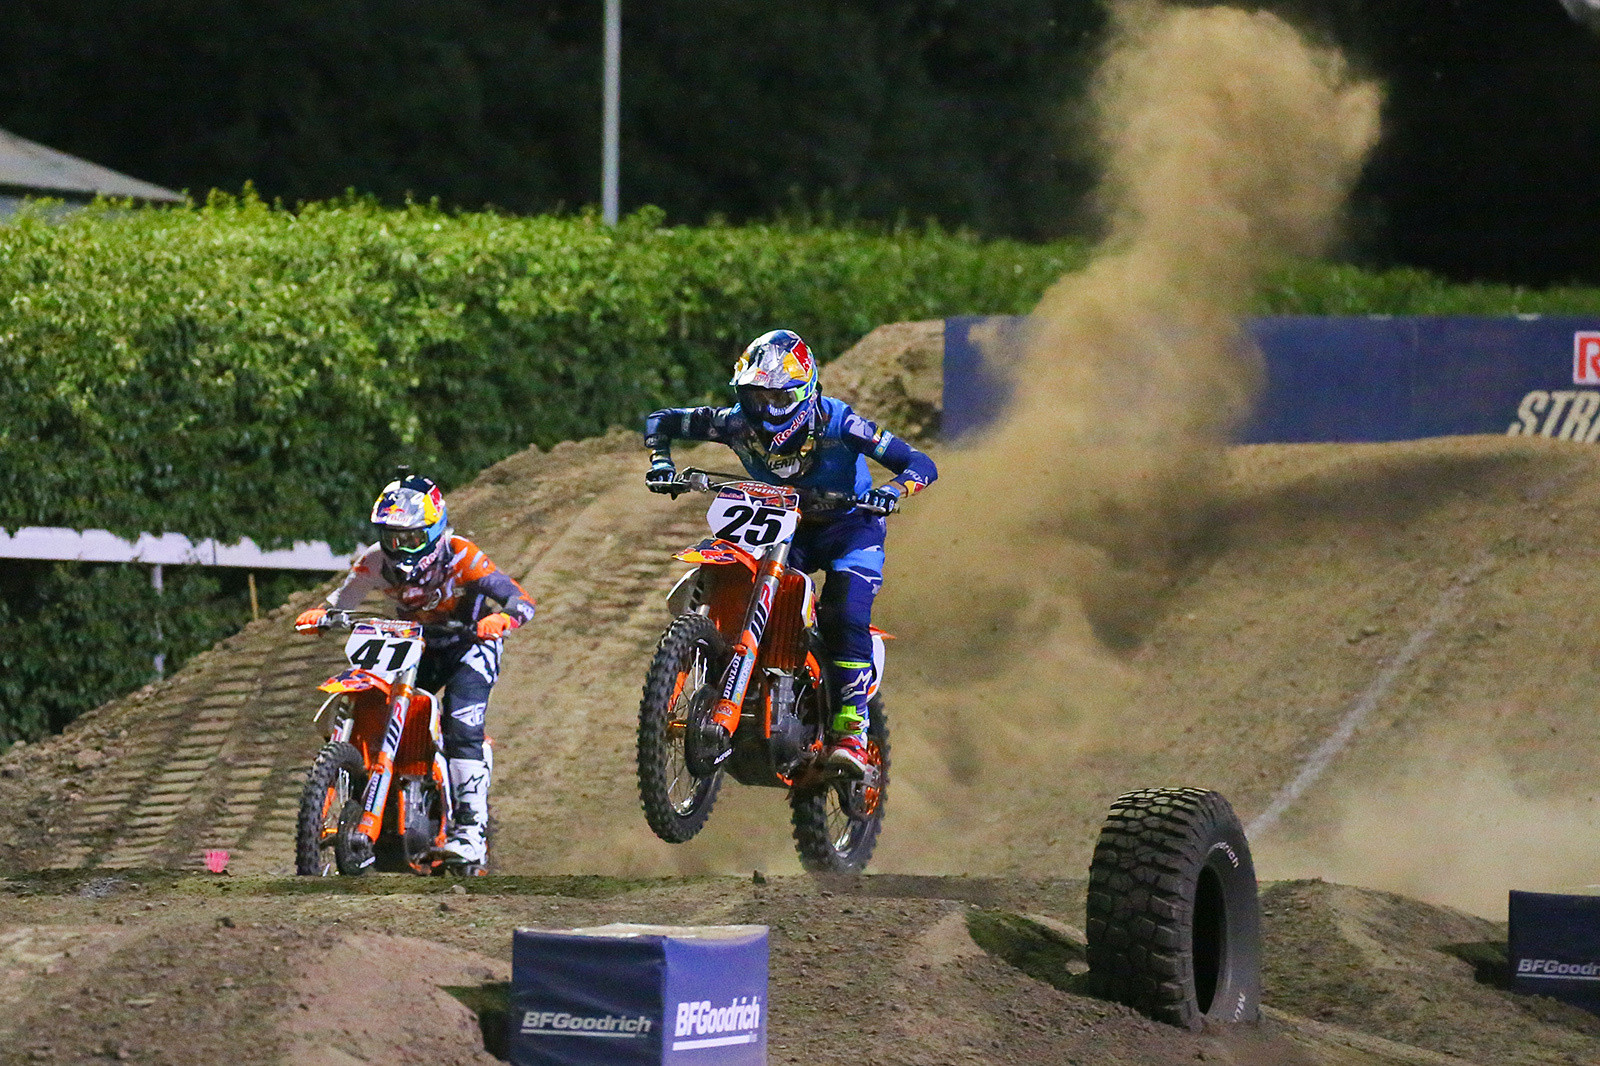 Marvin Musquin and Trey Canard - Photo Blast: Red Bull Straight Rhythm - Motocross Pictures - Vital MX